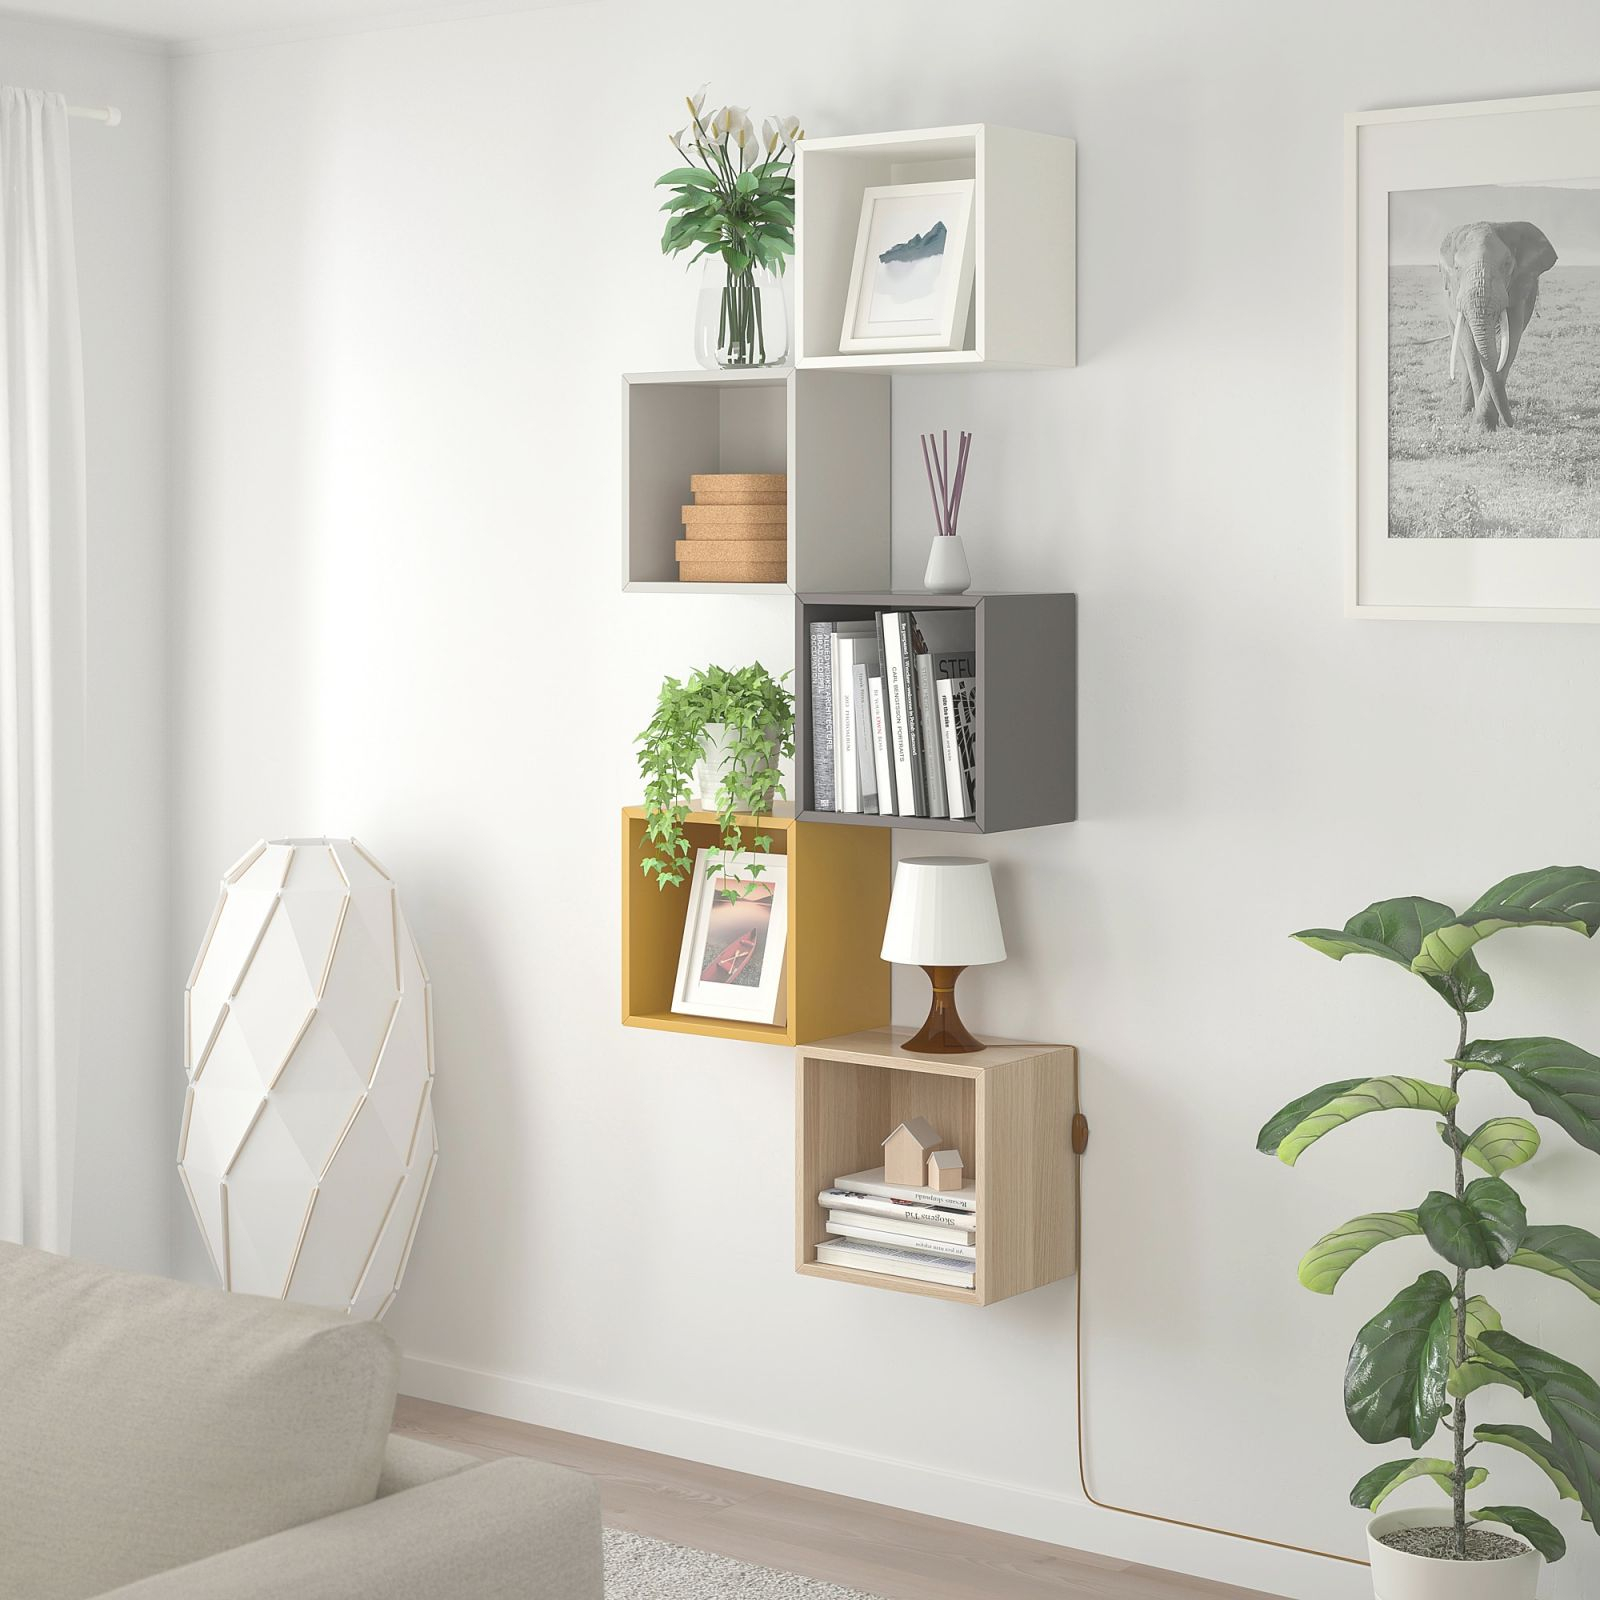 Wall-Mounted Storage Combination Eket Multicolor 1 intended for Ikea Wall Cabinets Living Room